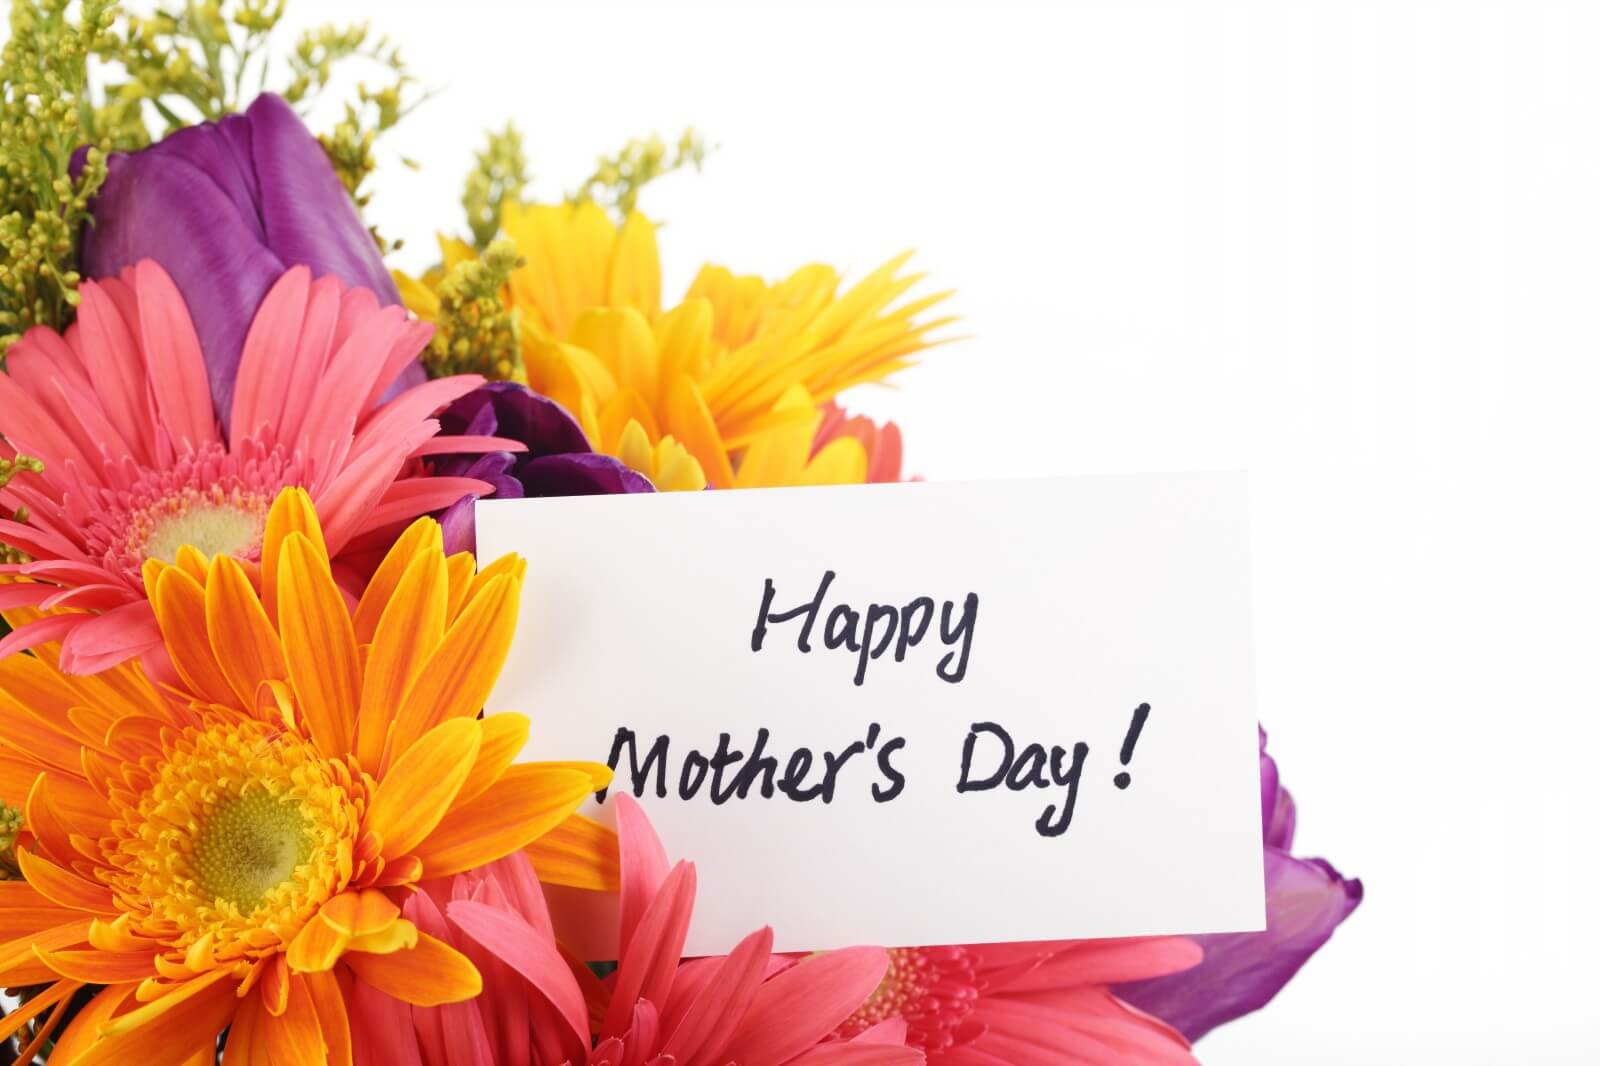 happy mothers day image photo hd background wallpaper